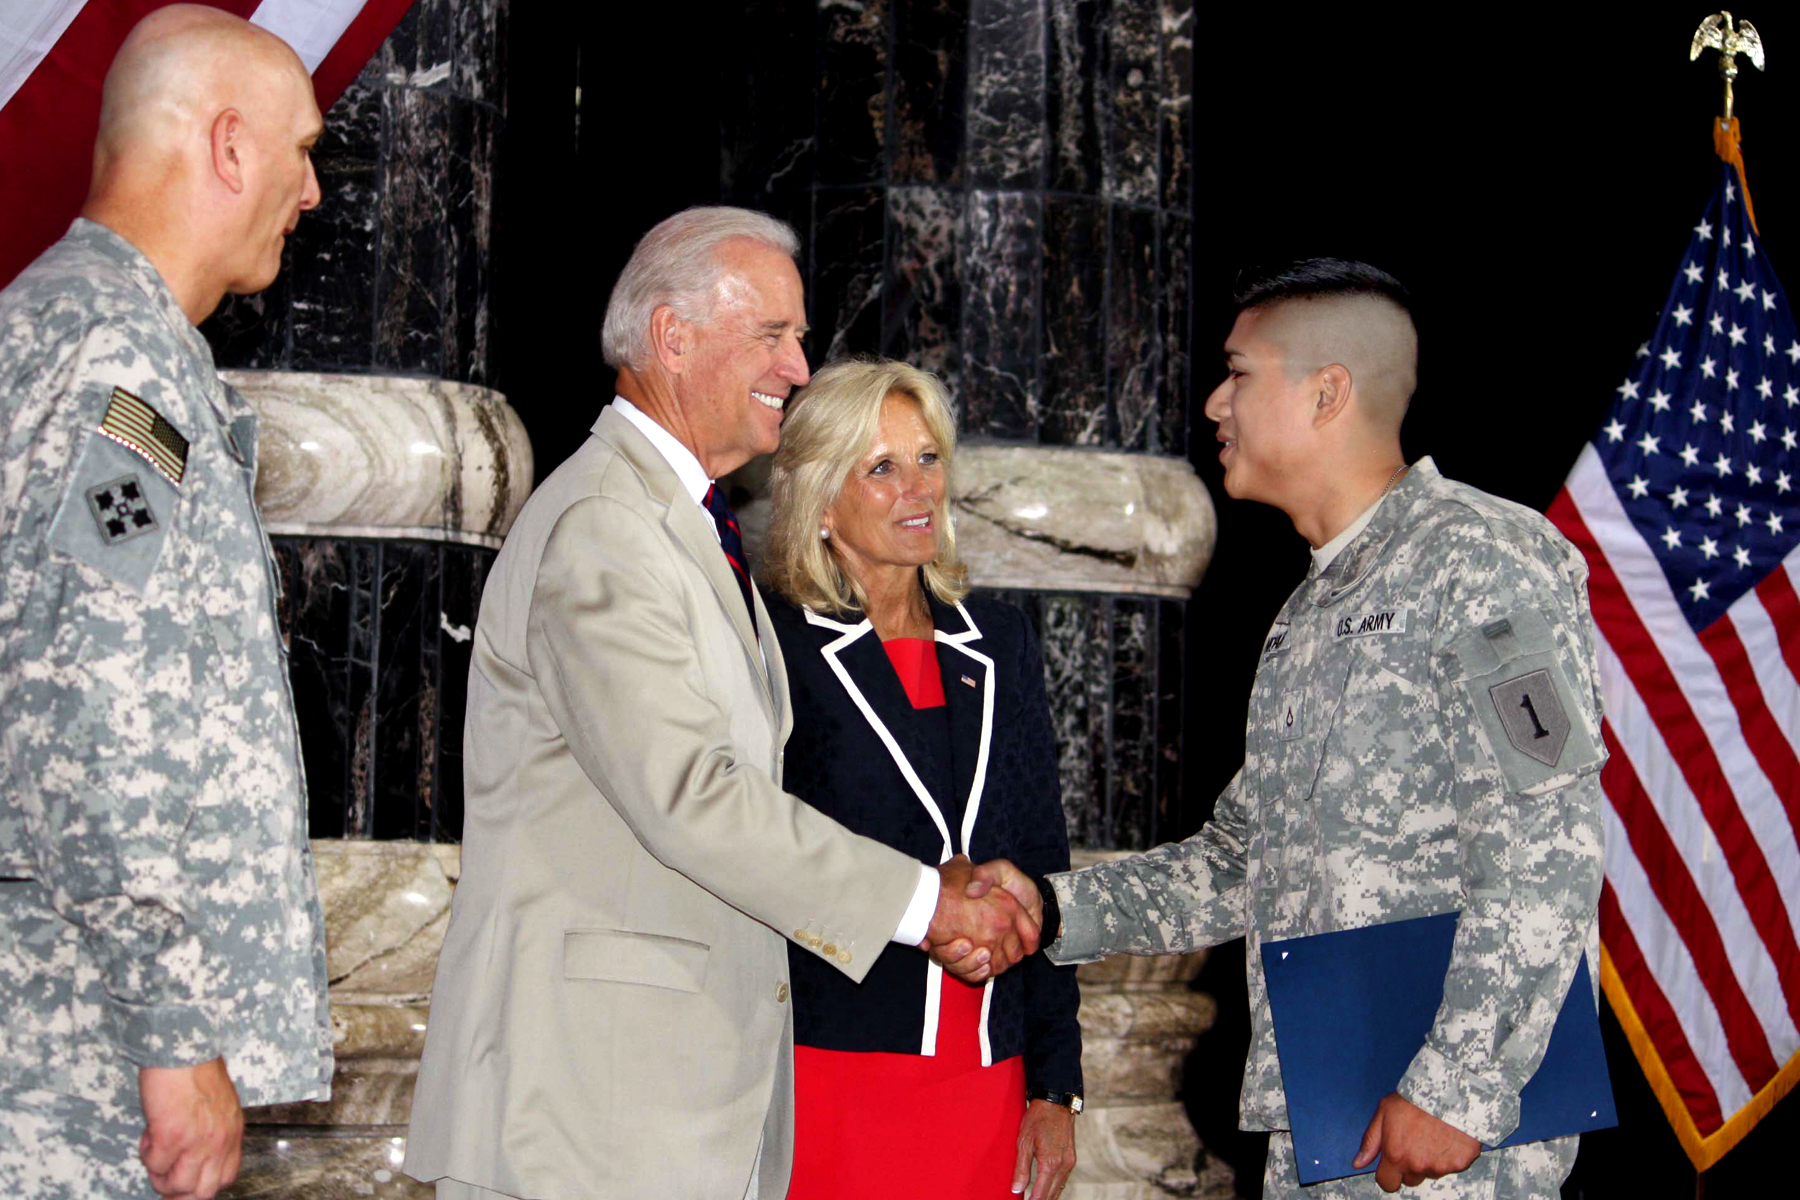 Vice President Joe Biden during a naturalization ceremony in Al Faw Palace on Camp Victory, Iraq